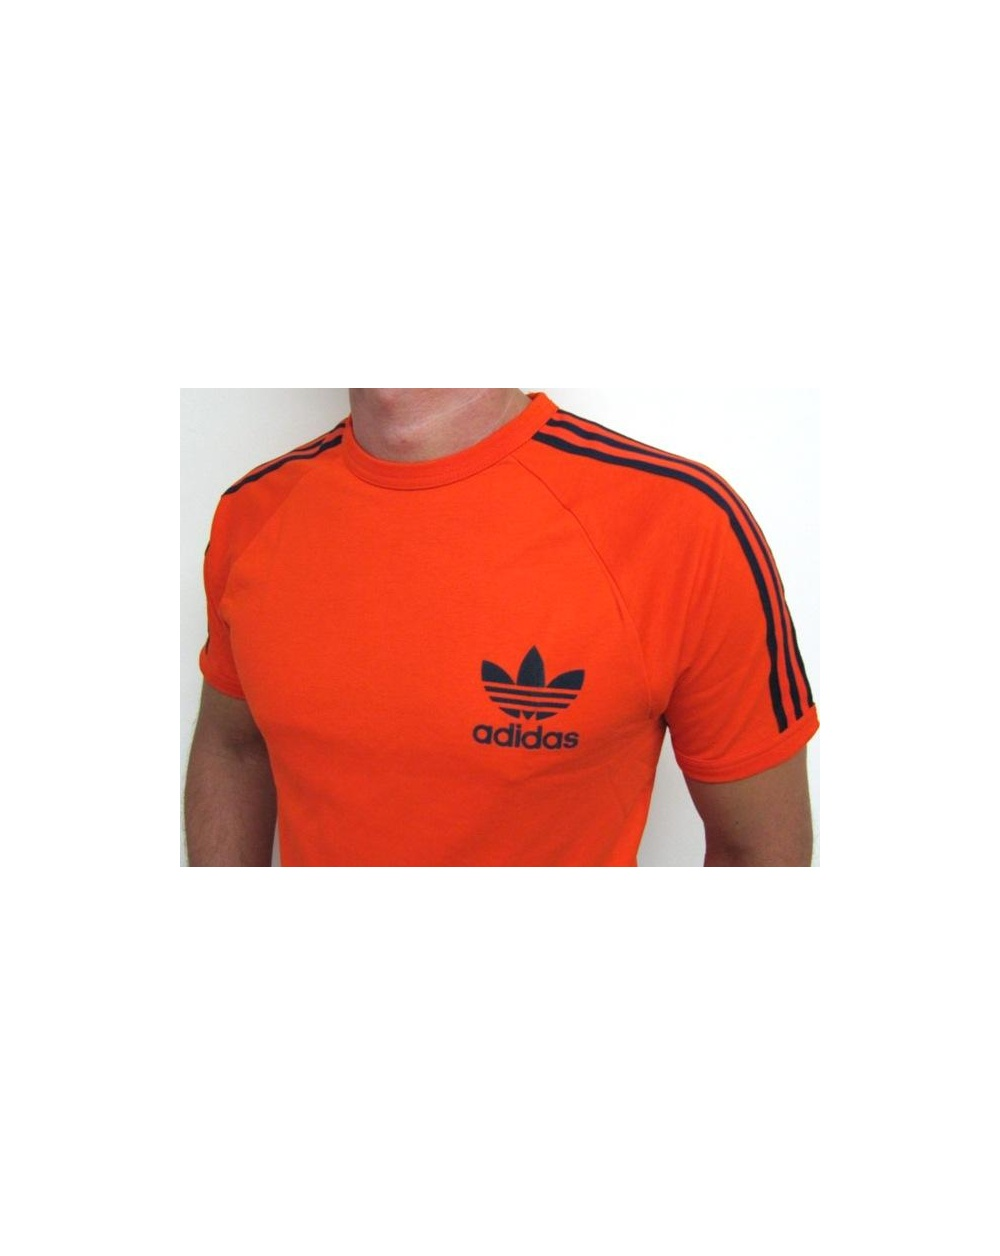 adidas originals 3 stripe trefoil t shirt